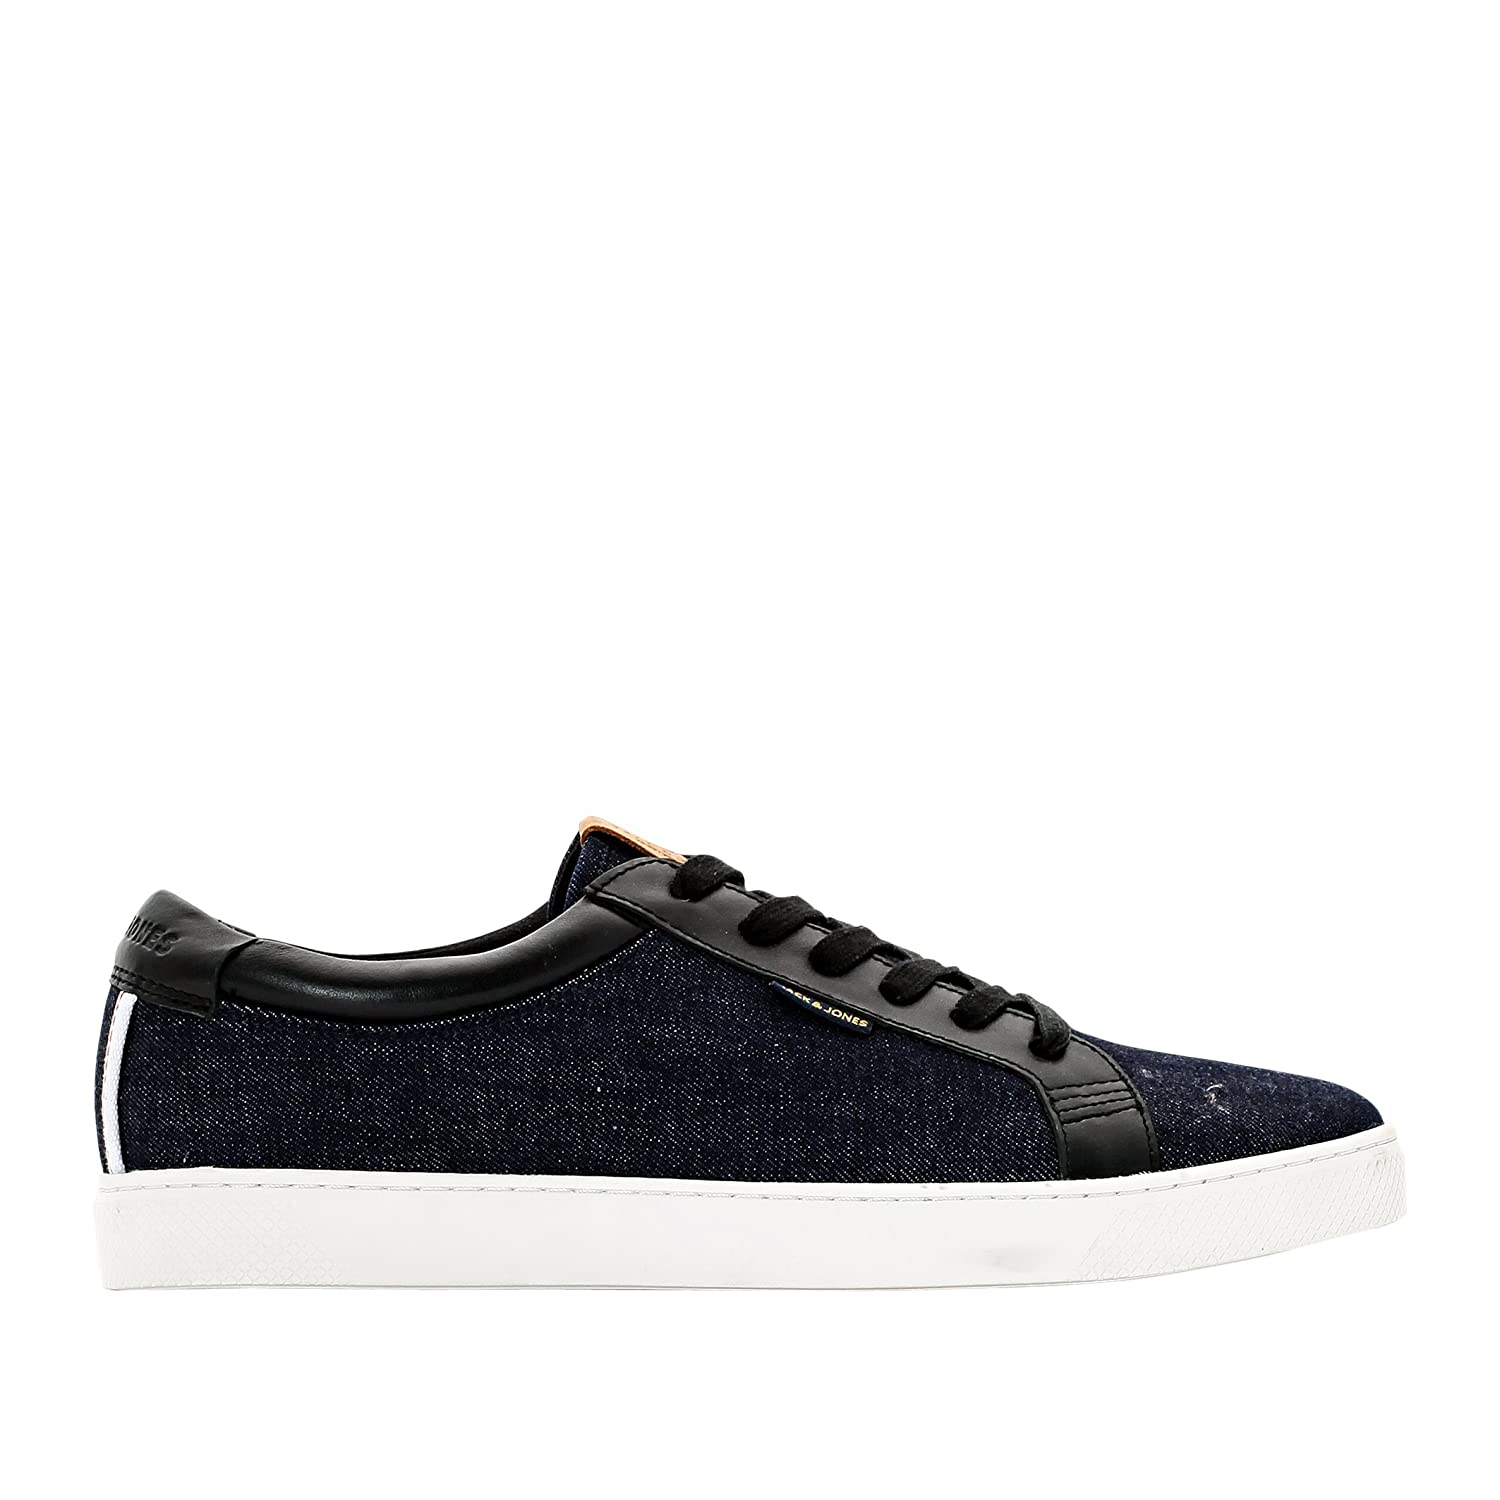 Jack & Jones Mann , Flache Turnschuhe Jj Sable , Mann Canvas Gre 44 Blau db653a